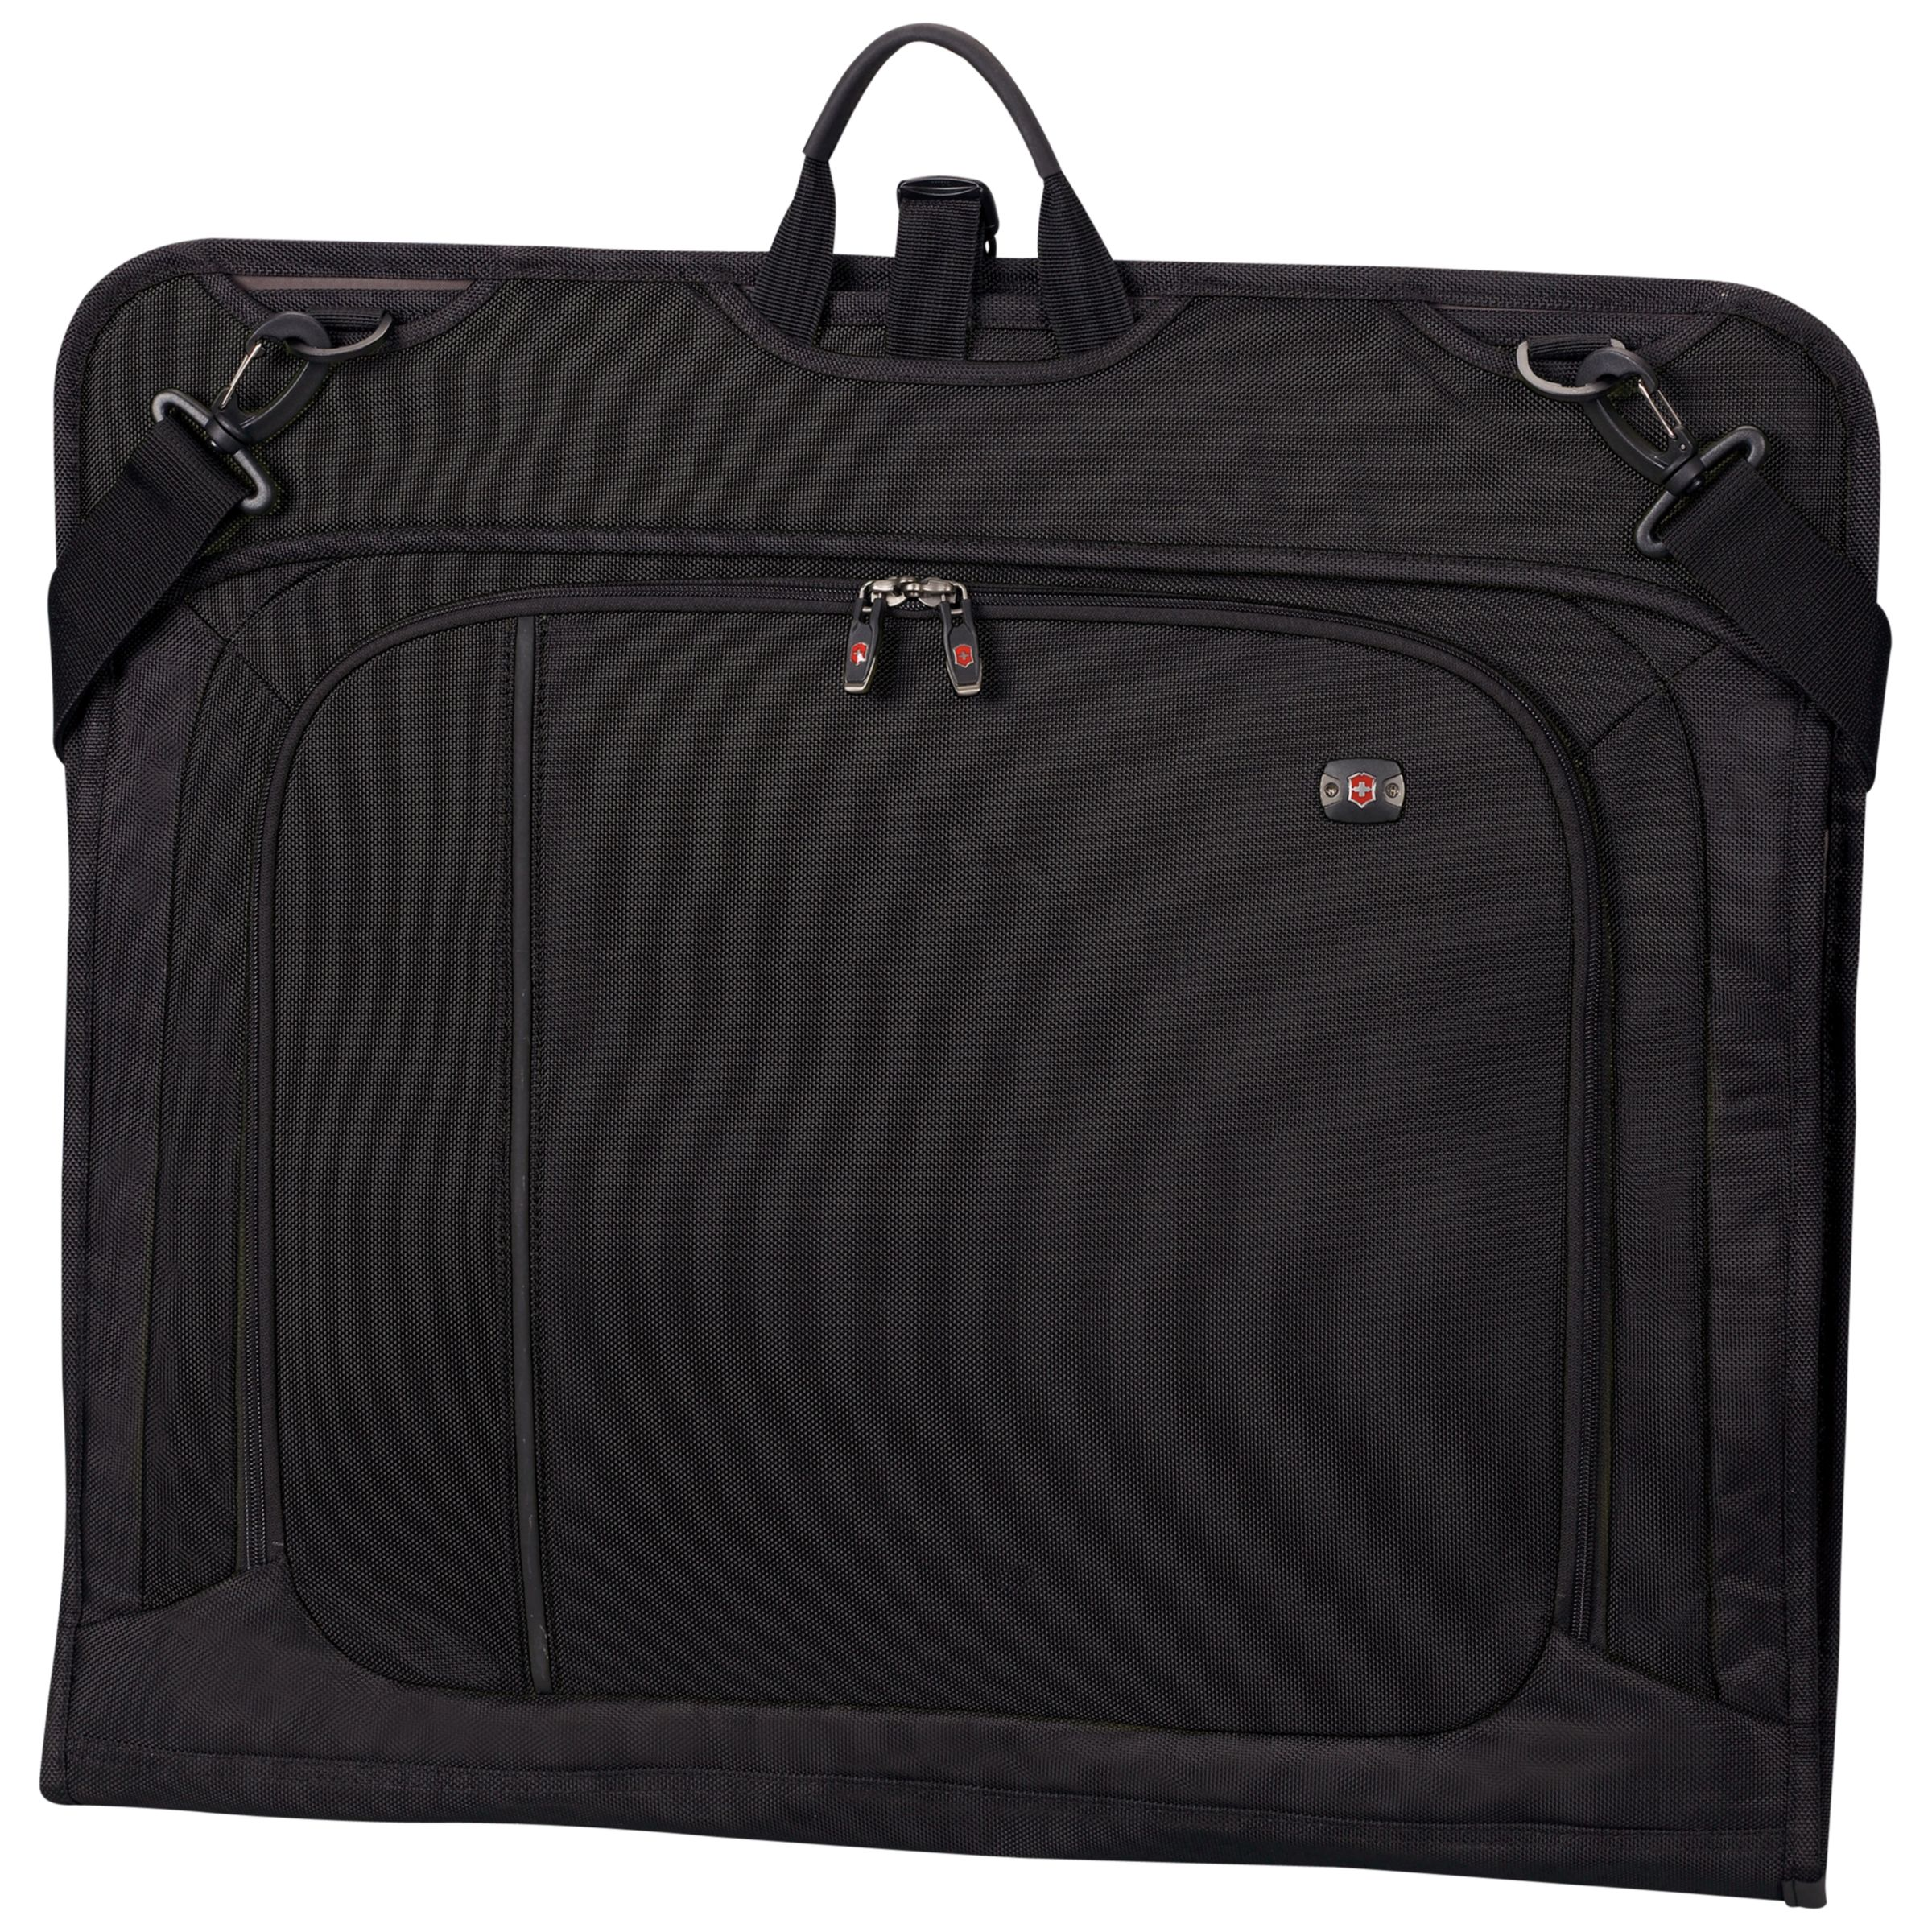 Victorinox Garment Bag, Black